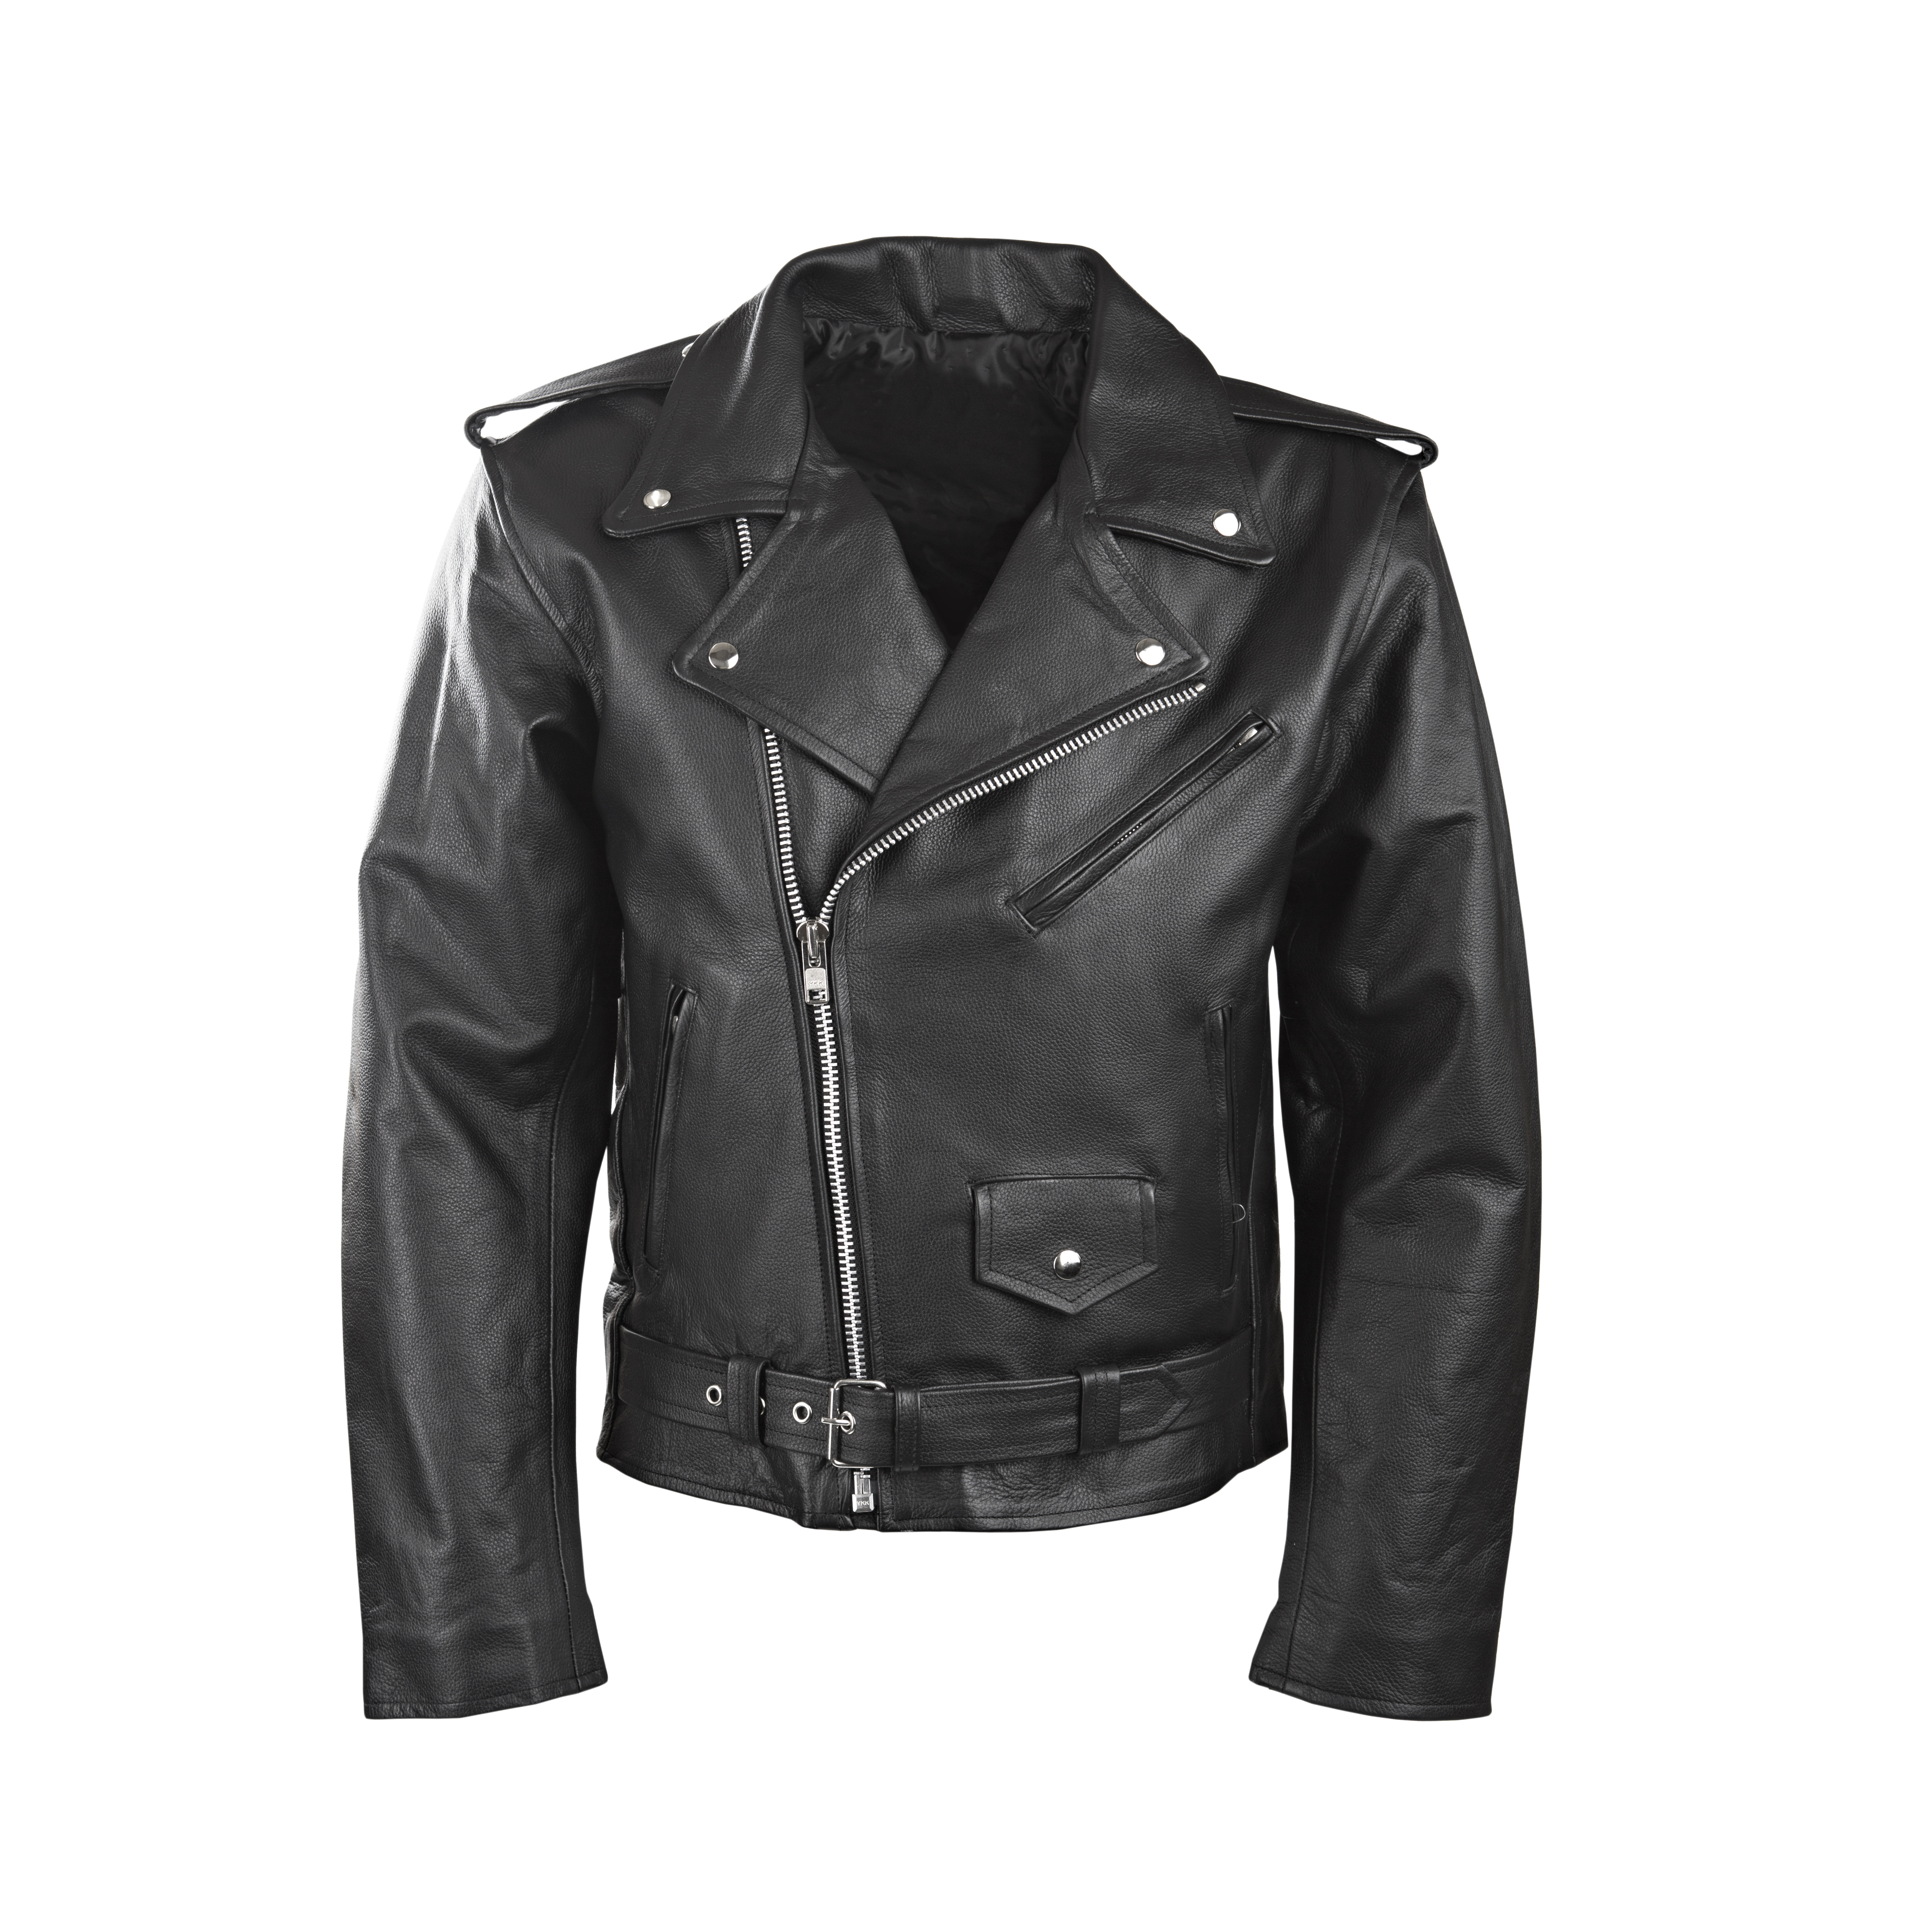 MENS BLACK MOTORCYCLE MOTORBIKER BARGAIN CLASSIC LEATHER JACKET CLEARANCE ef890e6bad3a